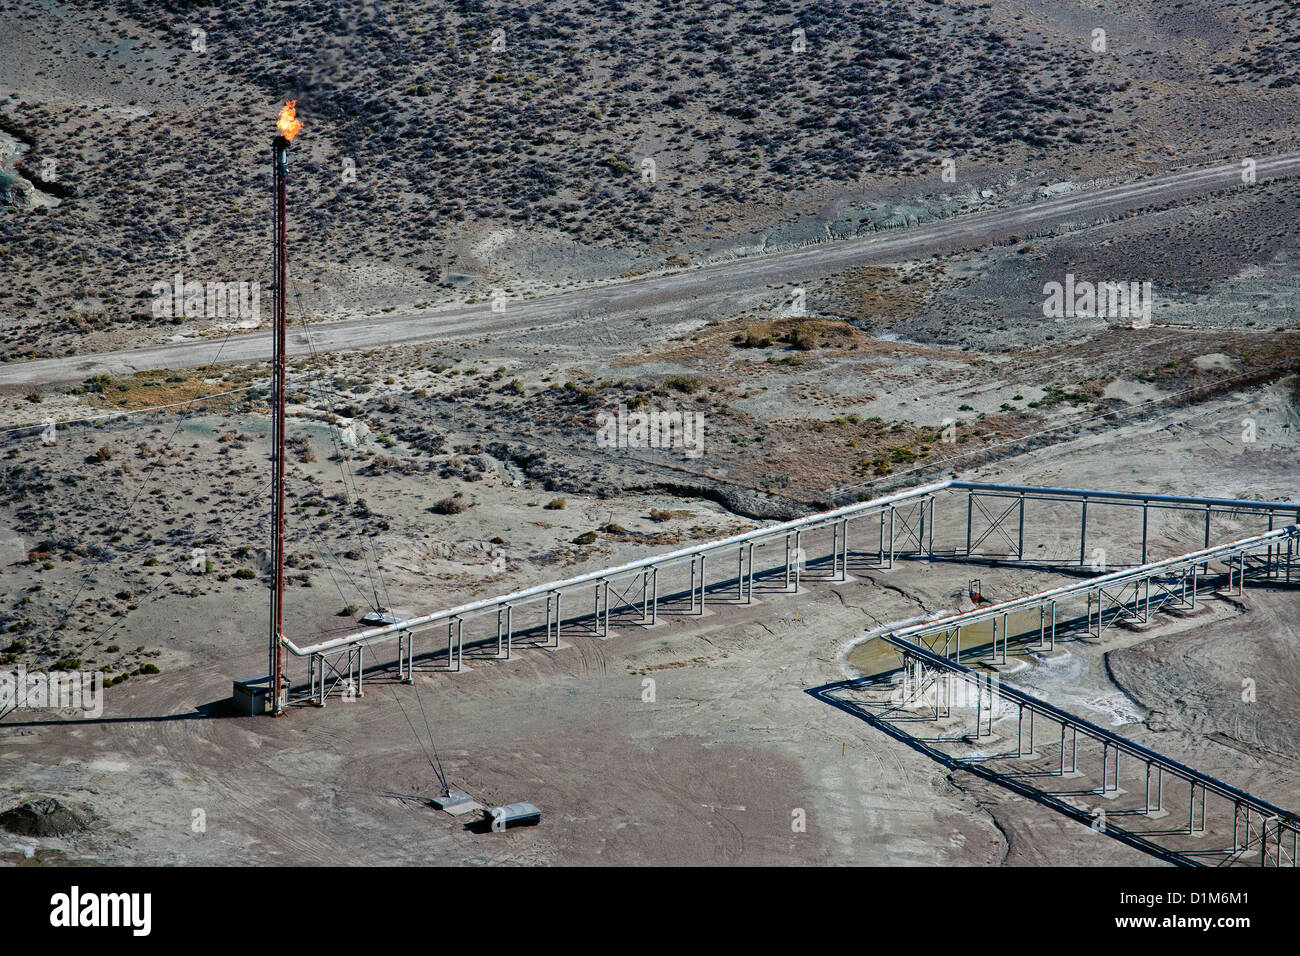 aerial photograph natural gas flare southern Wyoming - Stock Image